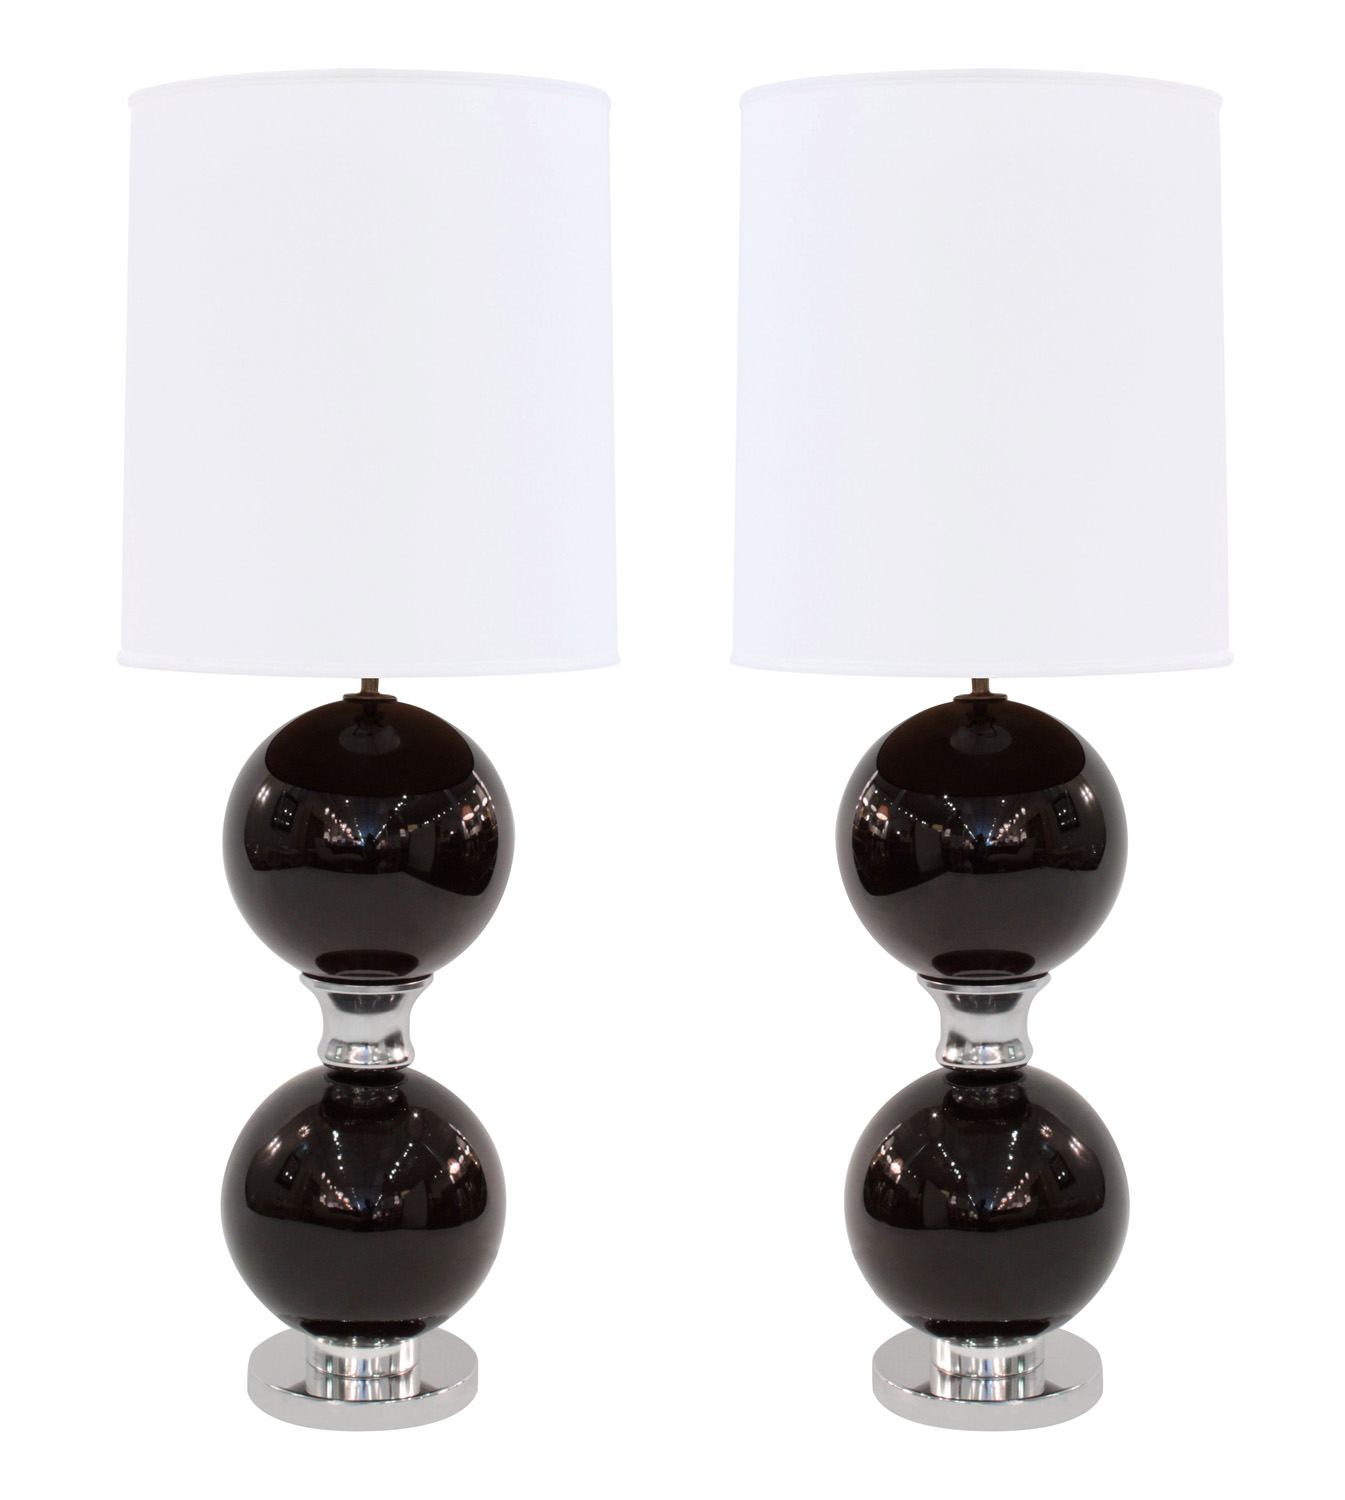 60s 55 lrg brown glass balls tablelamps301 hires.jpg